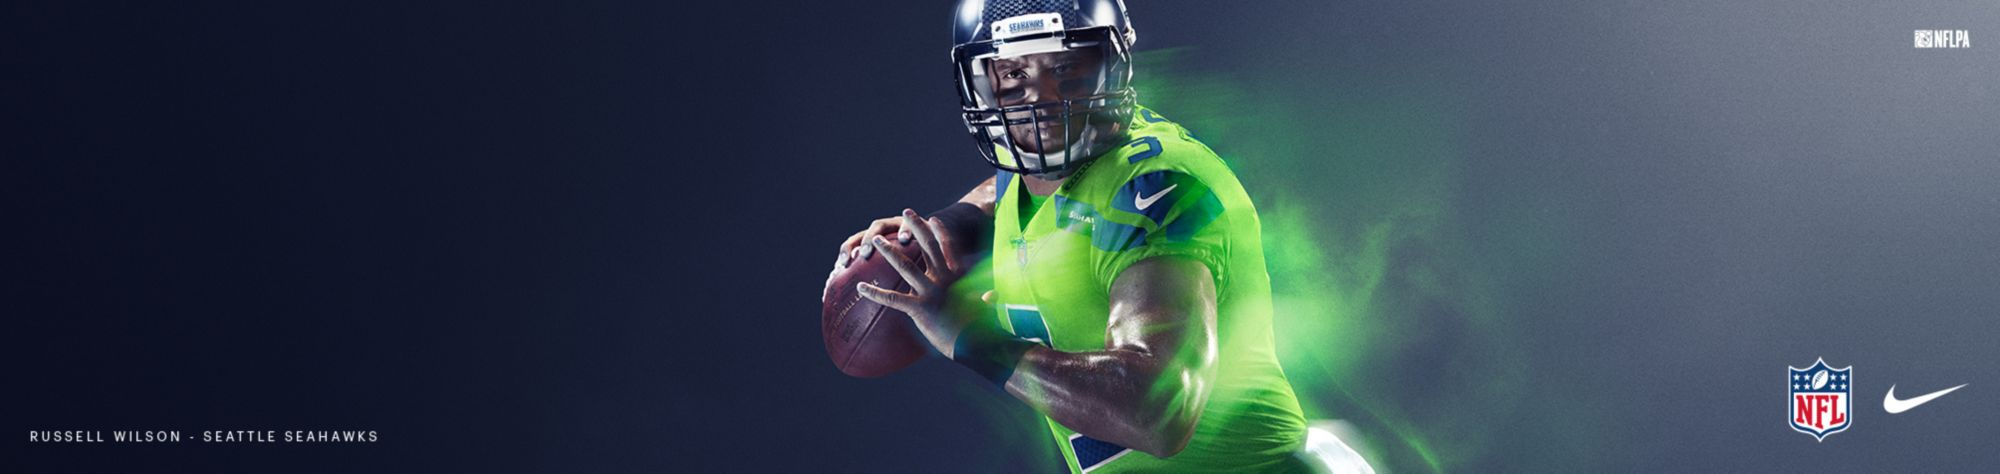 Color Rush Jerseys - Seahawks